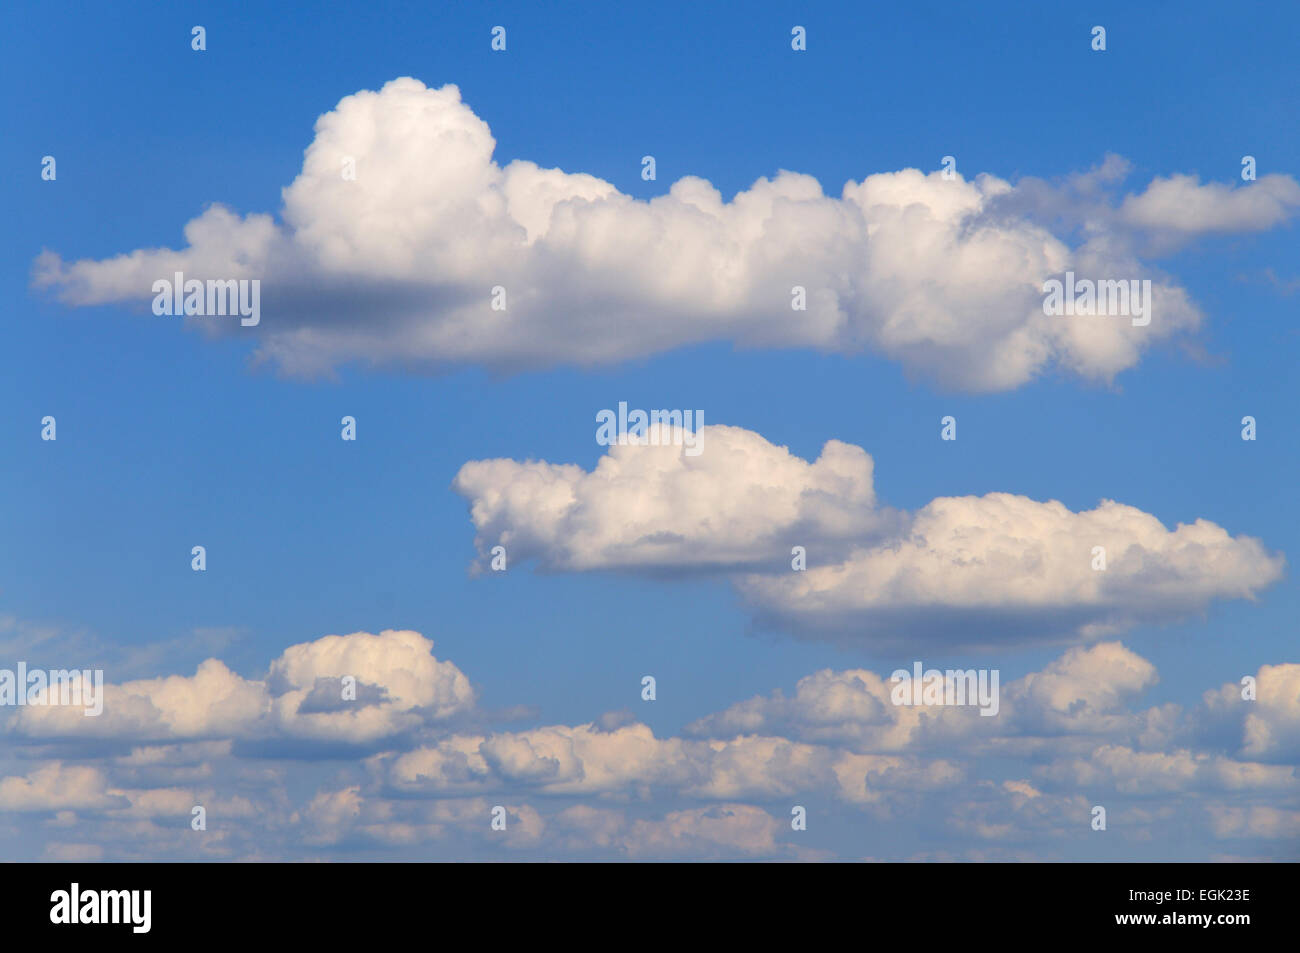 Cumulus clouds or cumulonimbus clouds, North Rhine-Westphalia, Germany - Stock Image